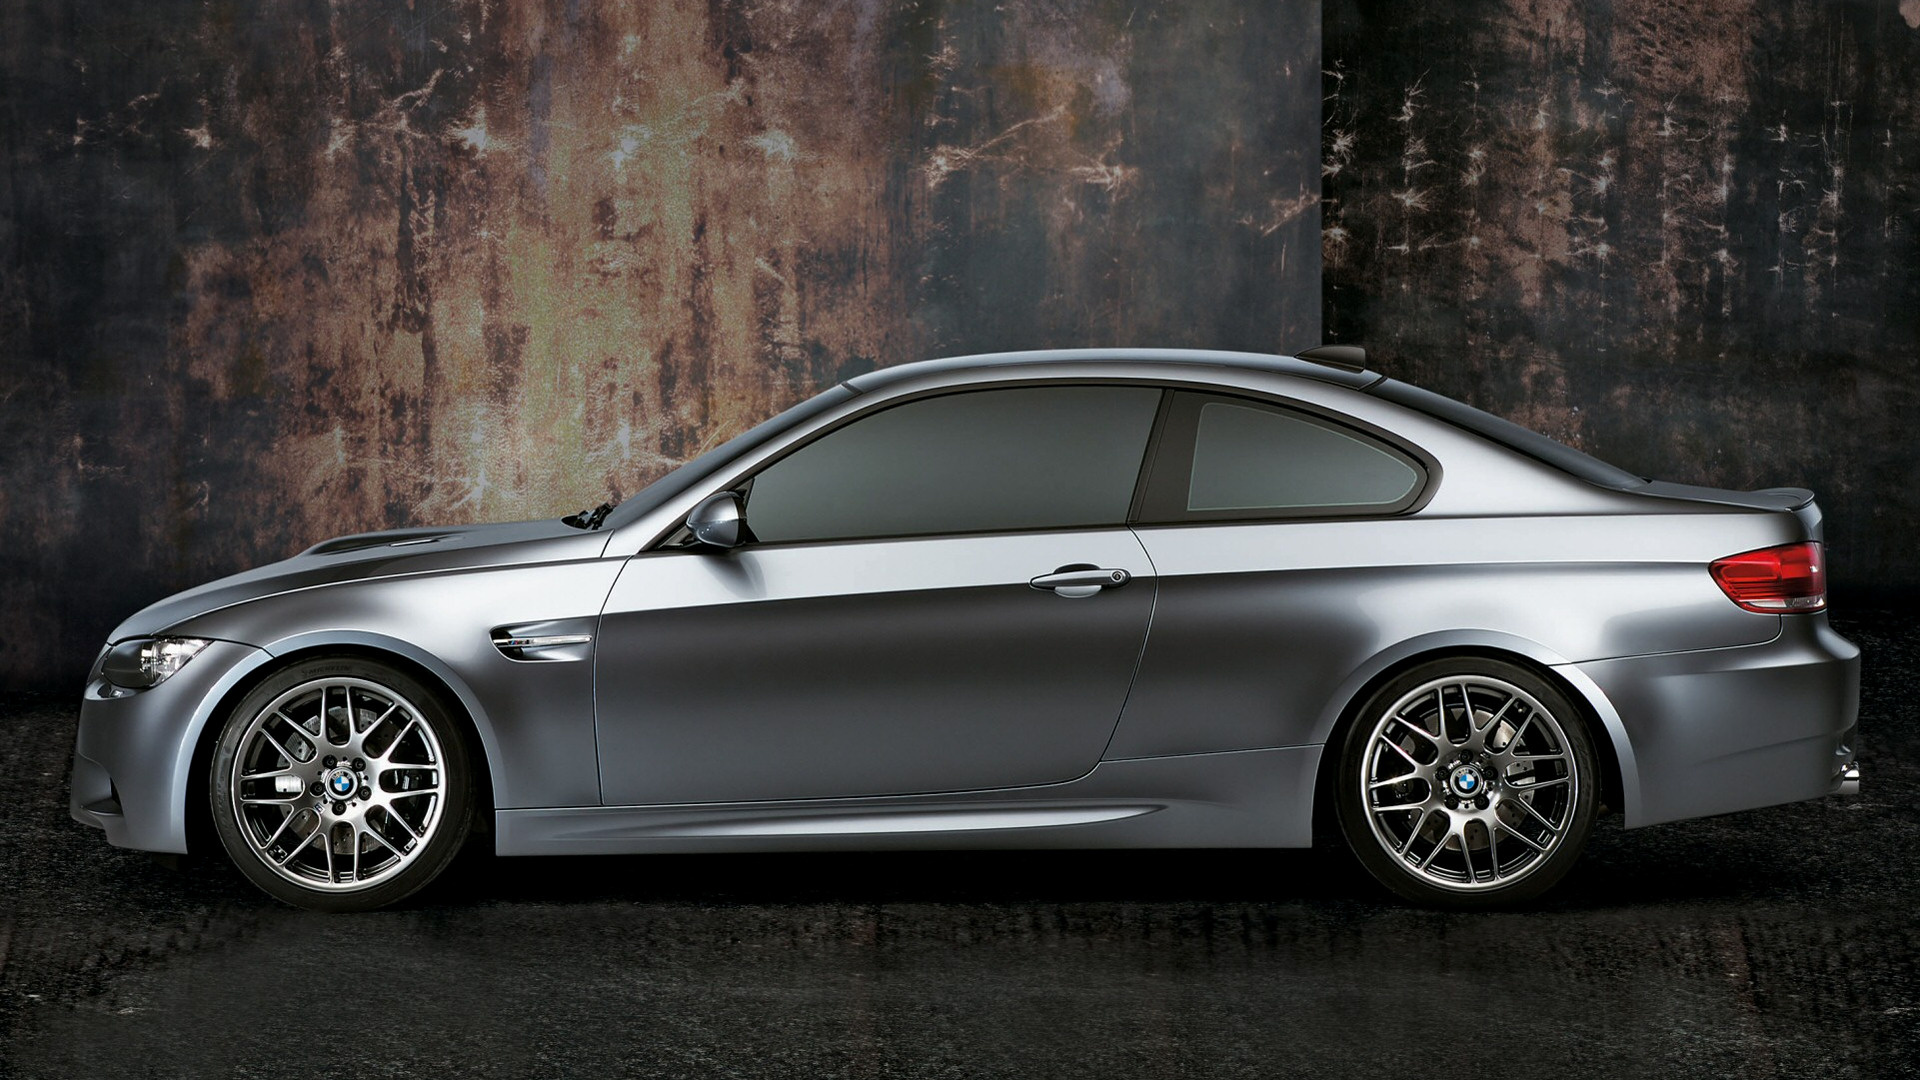 BMW M3 Concept (2007) Wallpapers and HD Images - Car Pixel